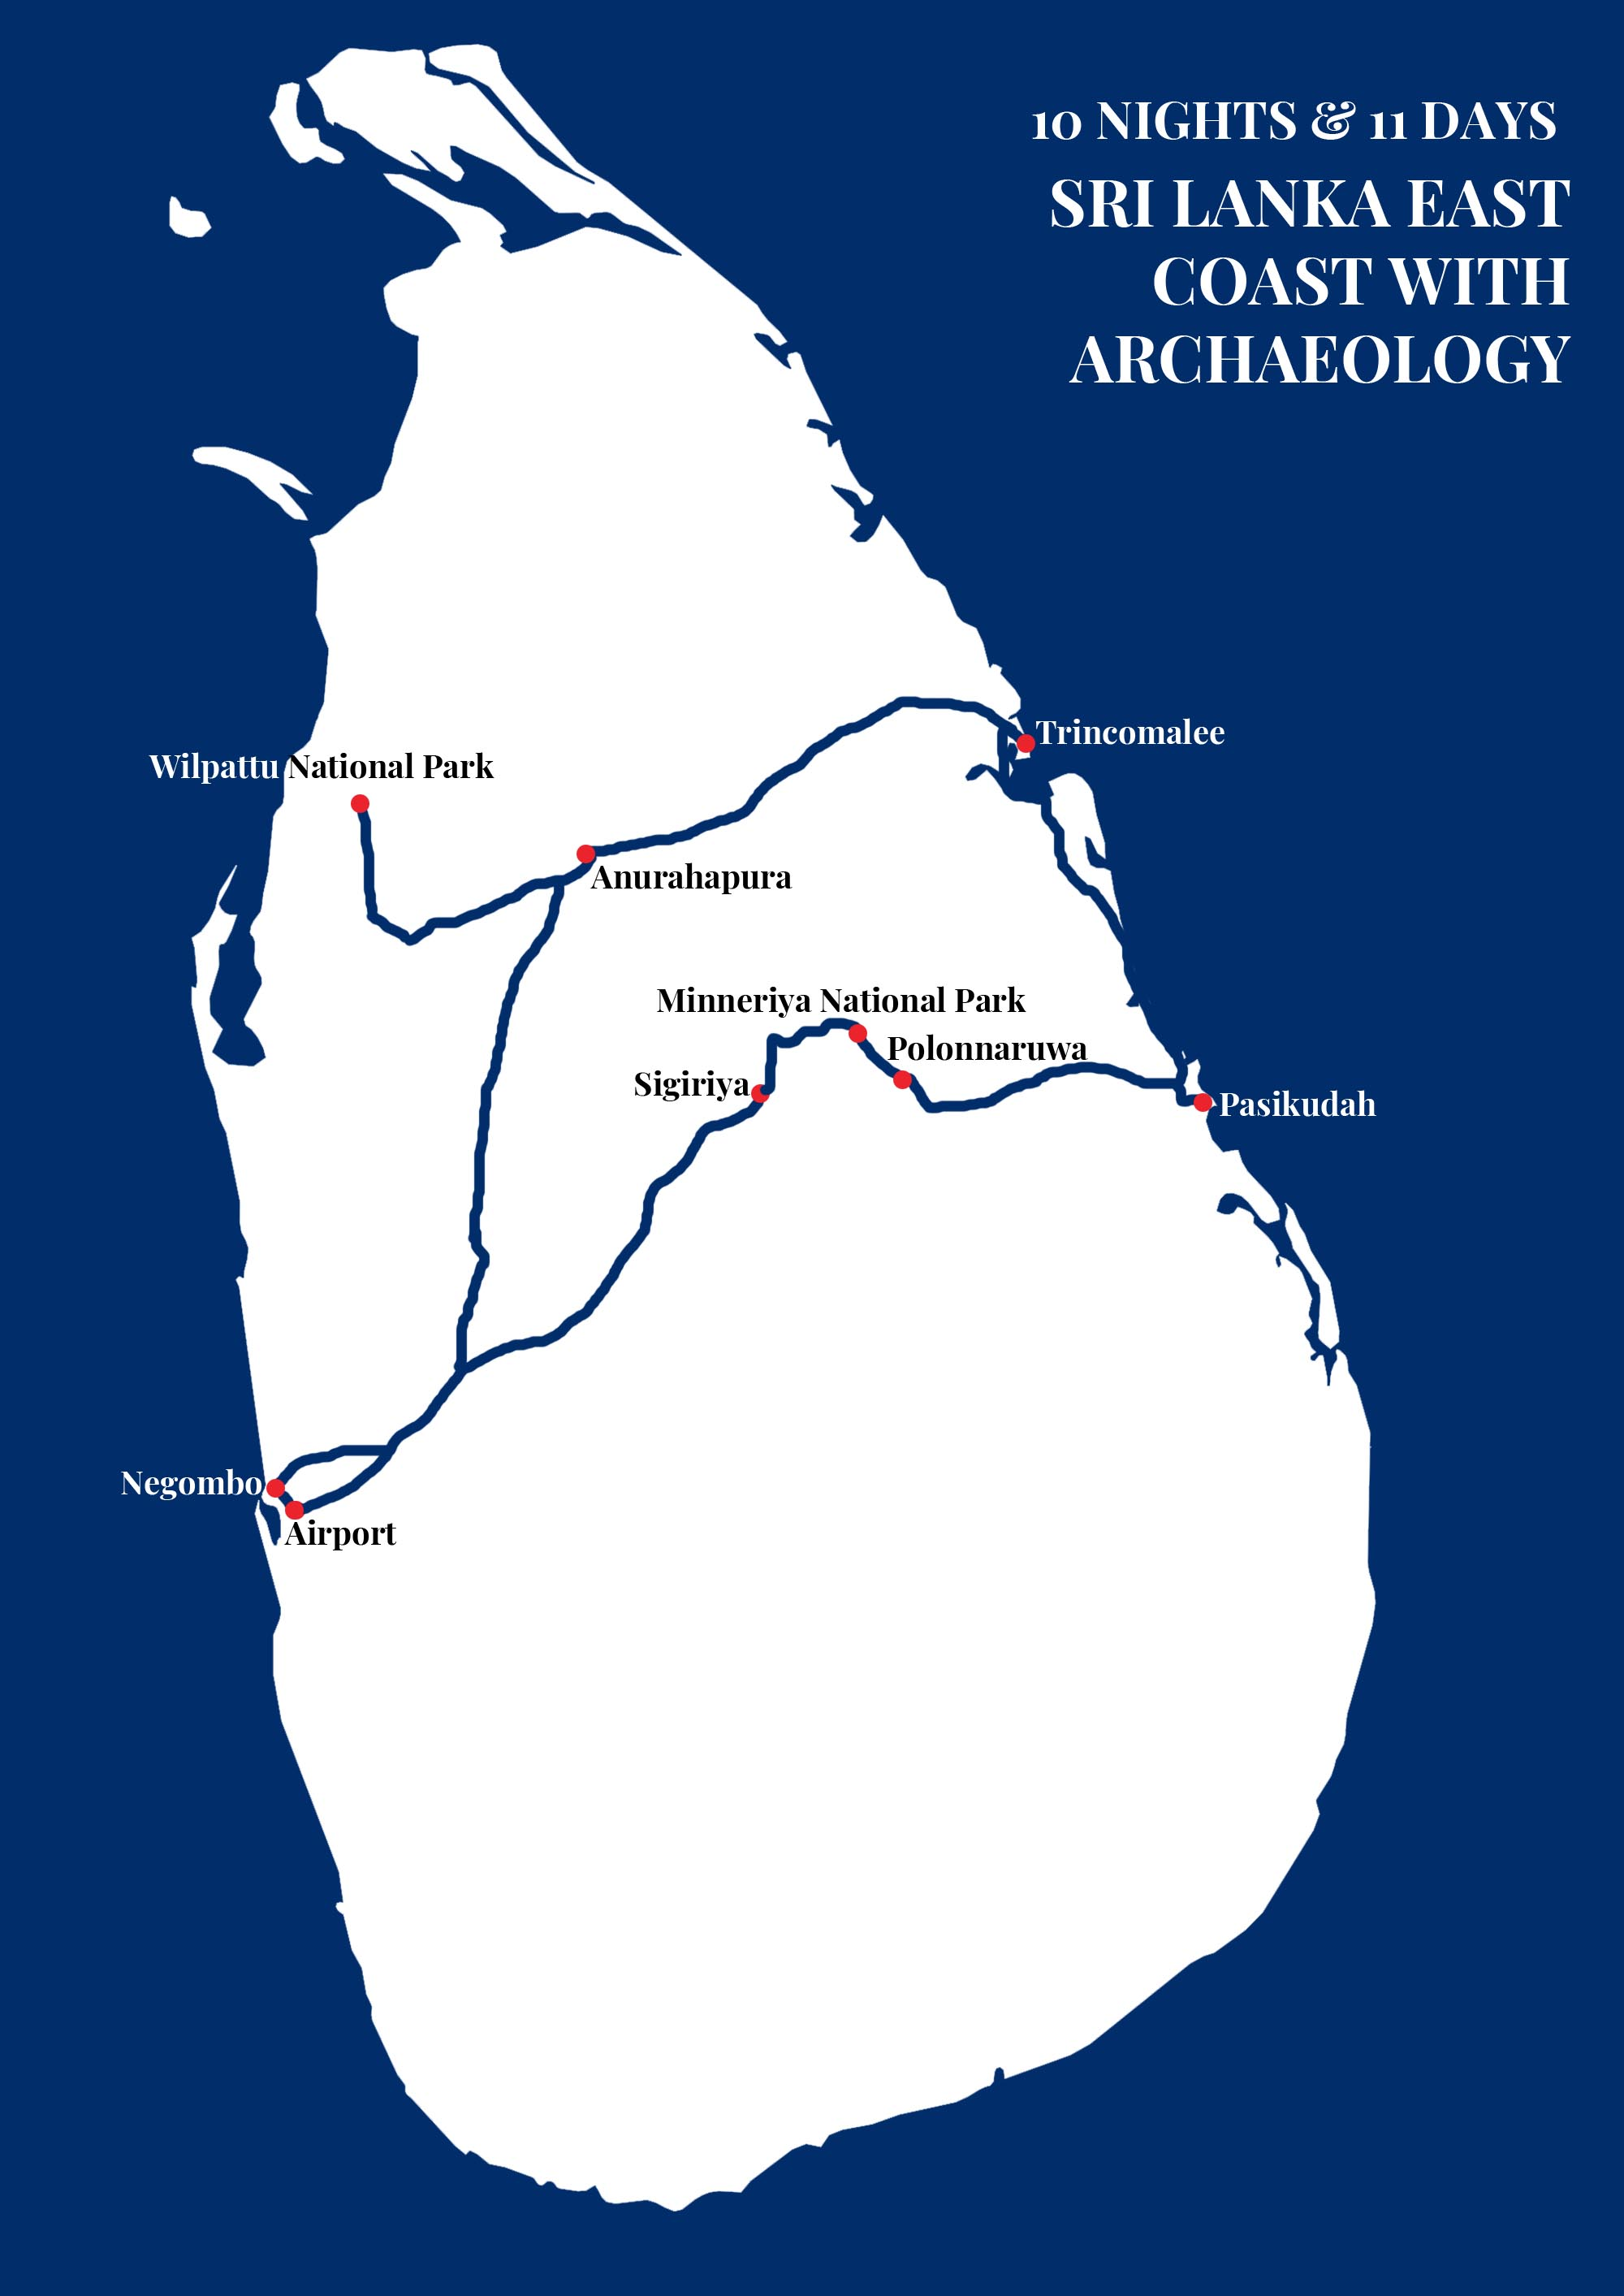 SRI LANKA EAST COAST WITH ARCHAEOLOGY Map